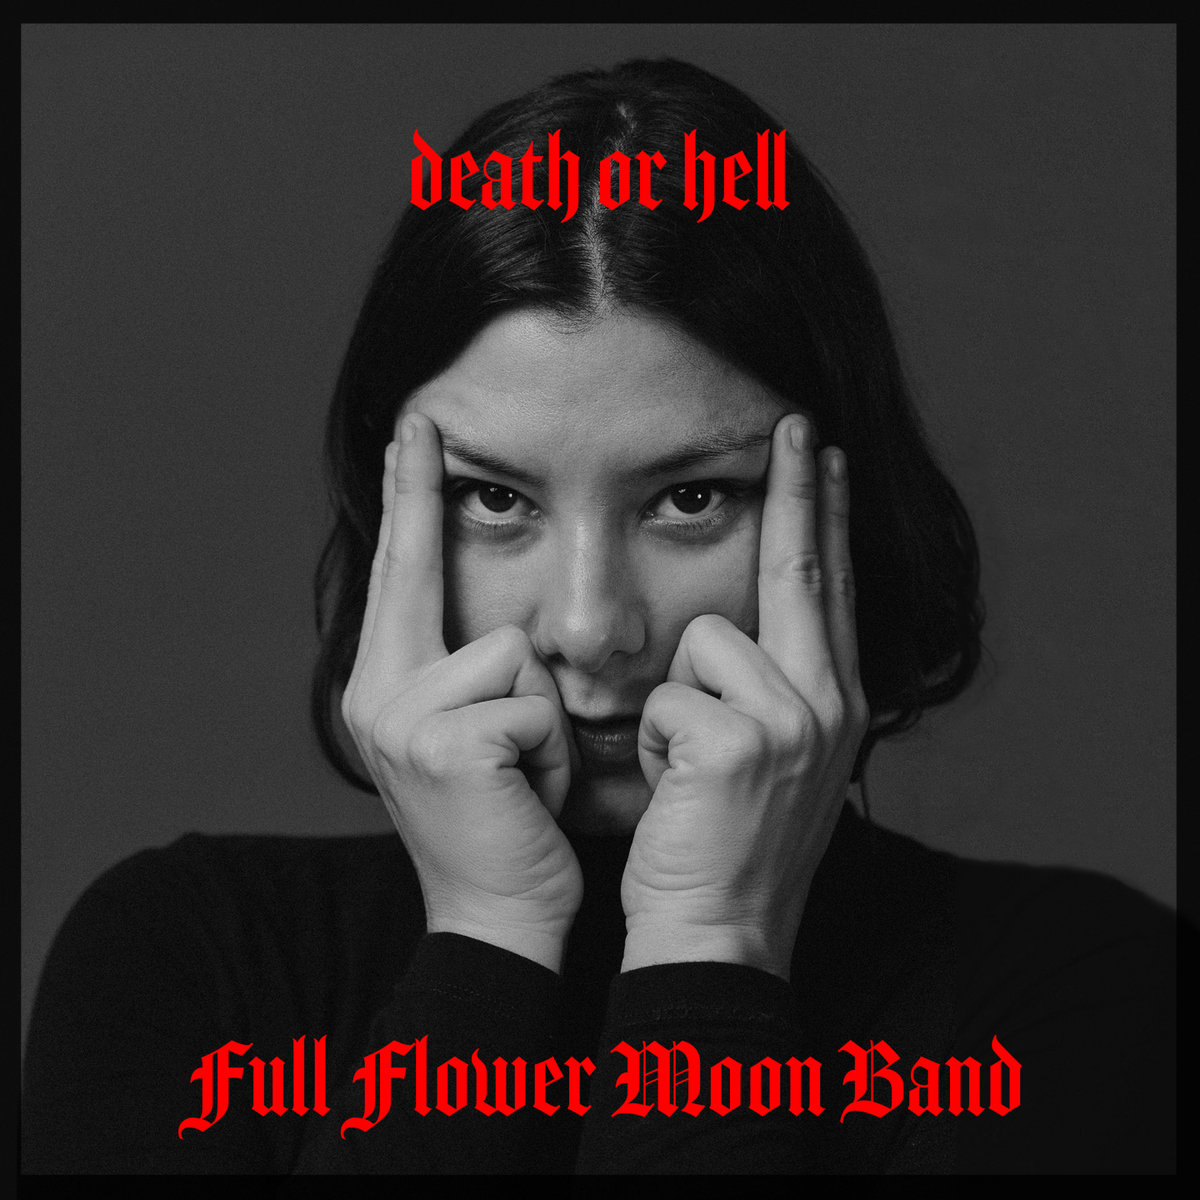 Full Flower Moon Band - Death or Hell